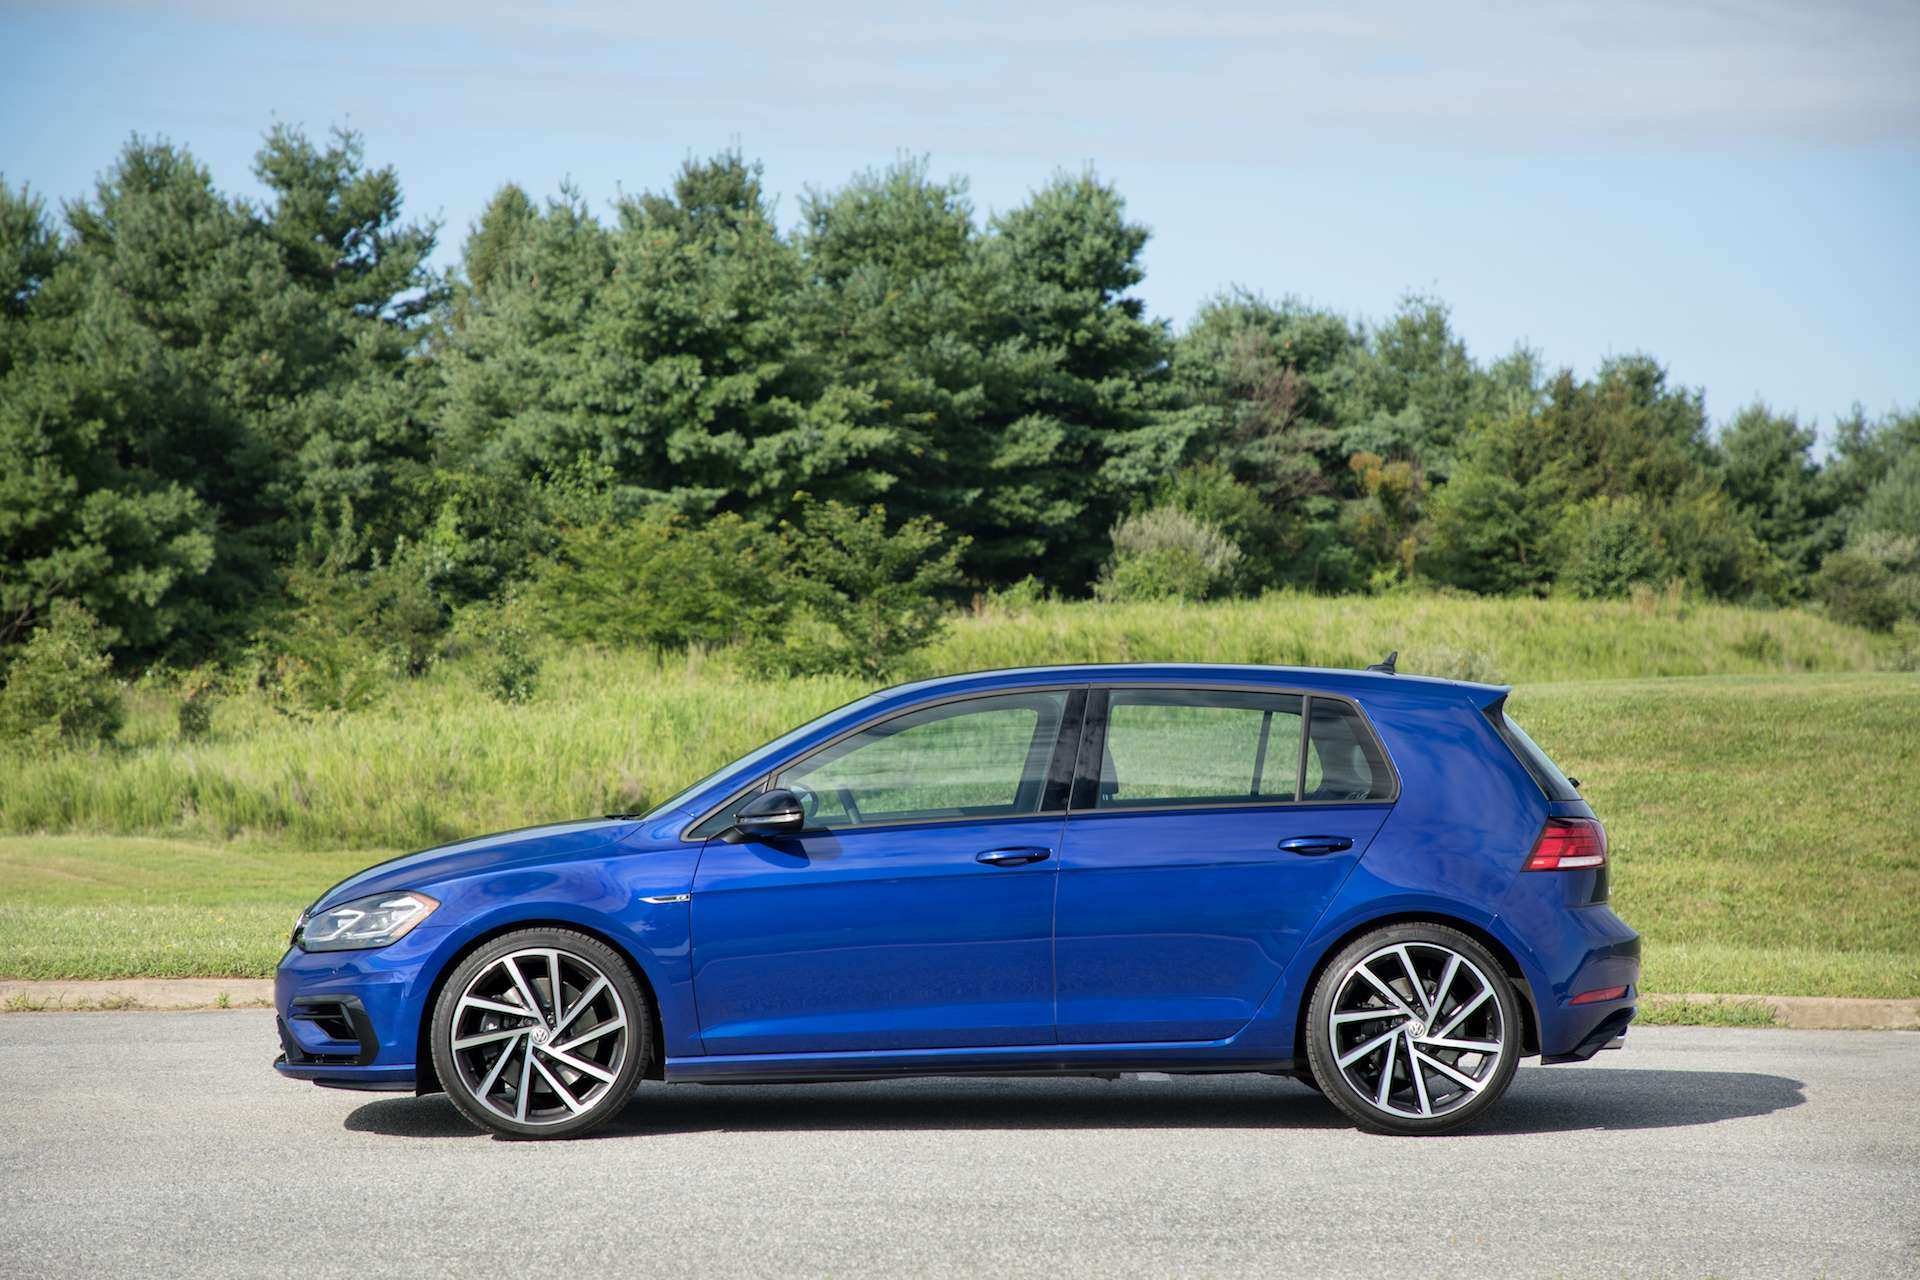 81 All New 2019 Volkswagen Golf R Model by 2019 Volkswagen Golf R